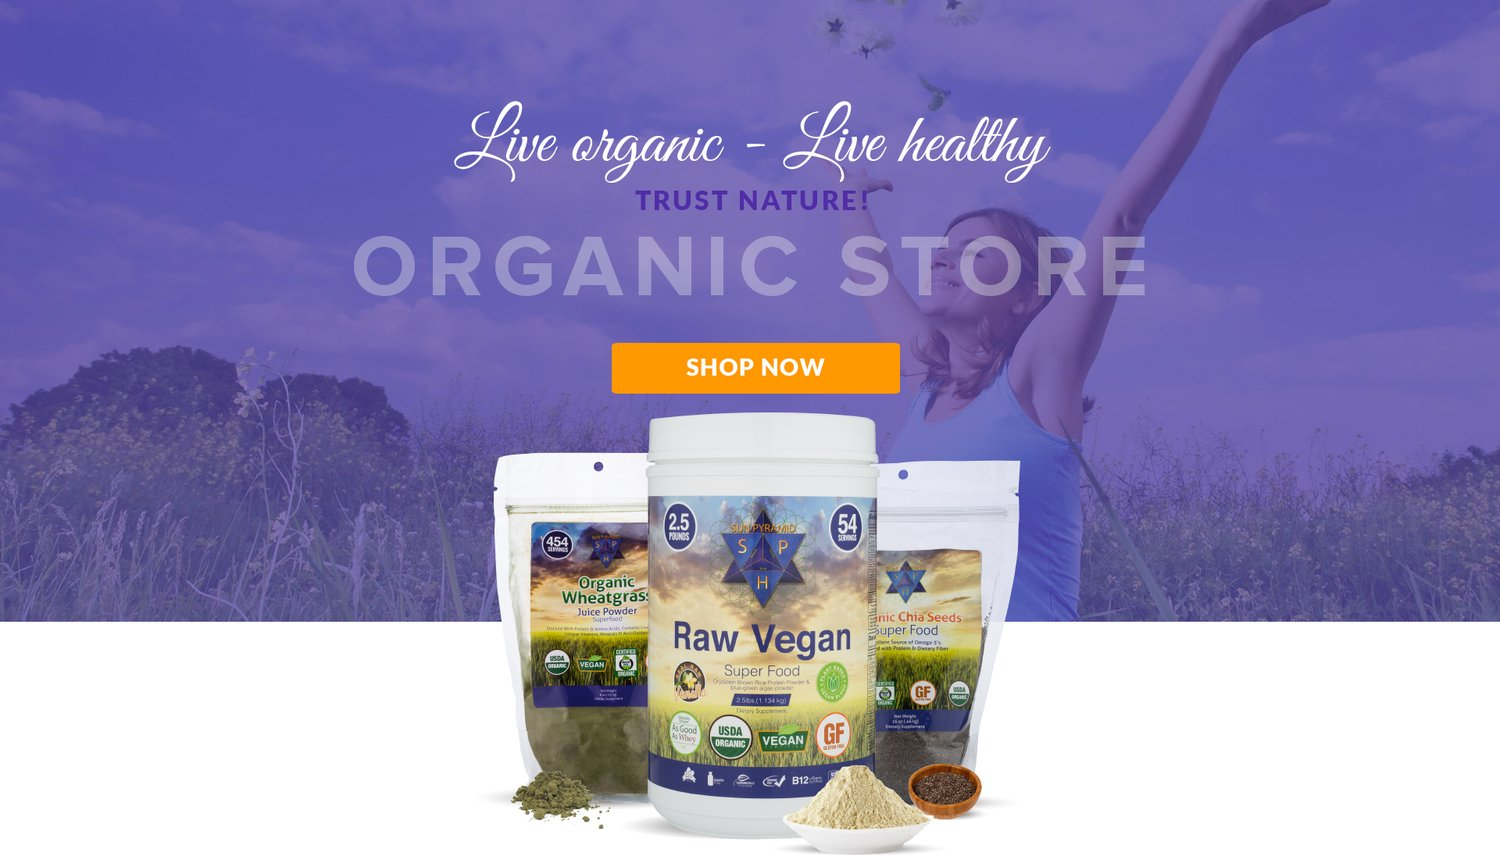 Live Organic - Live Healthy